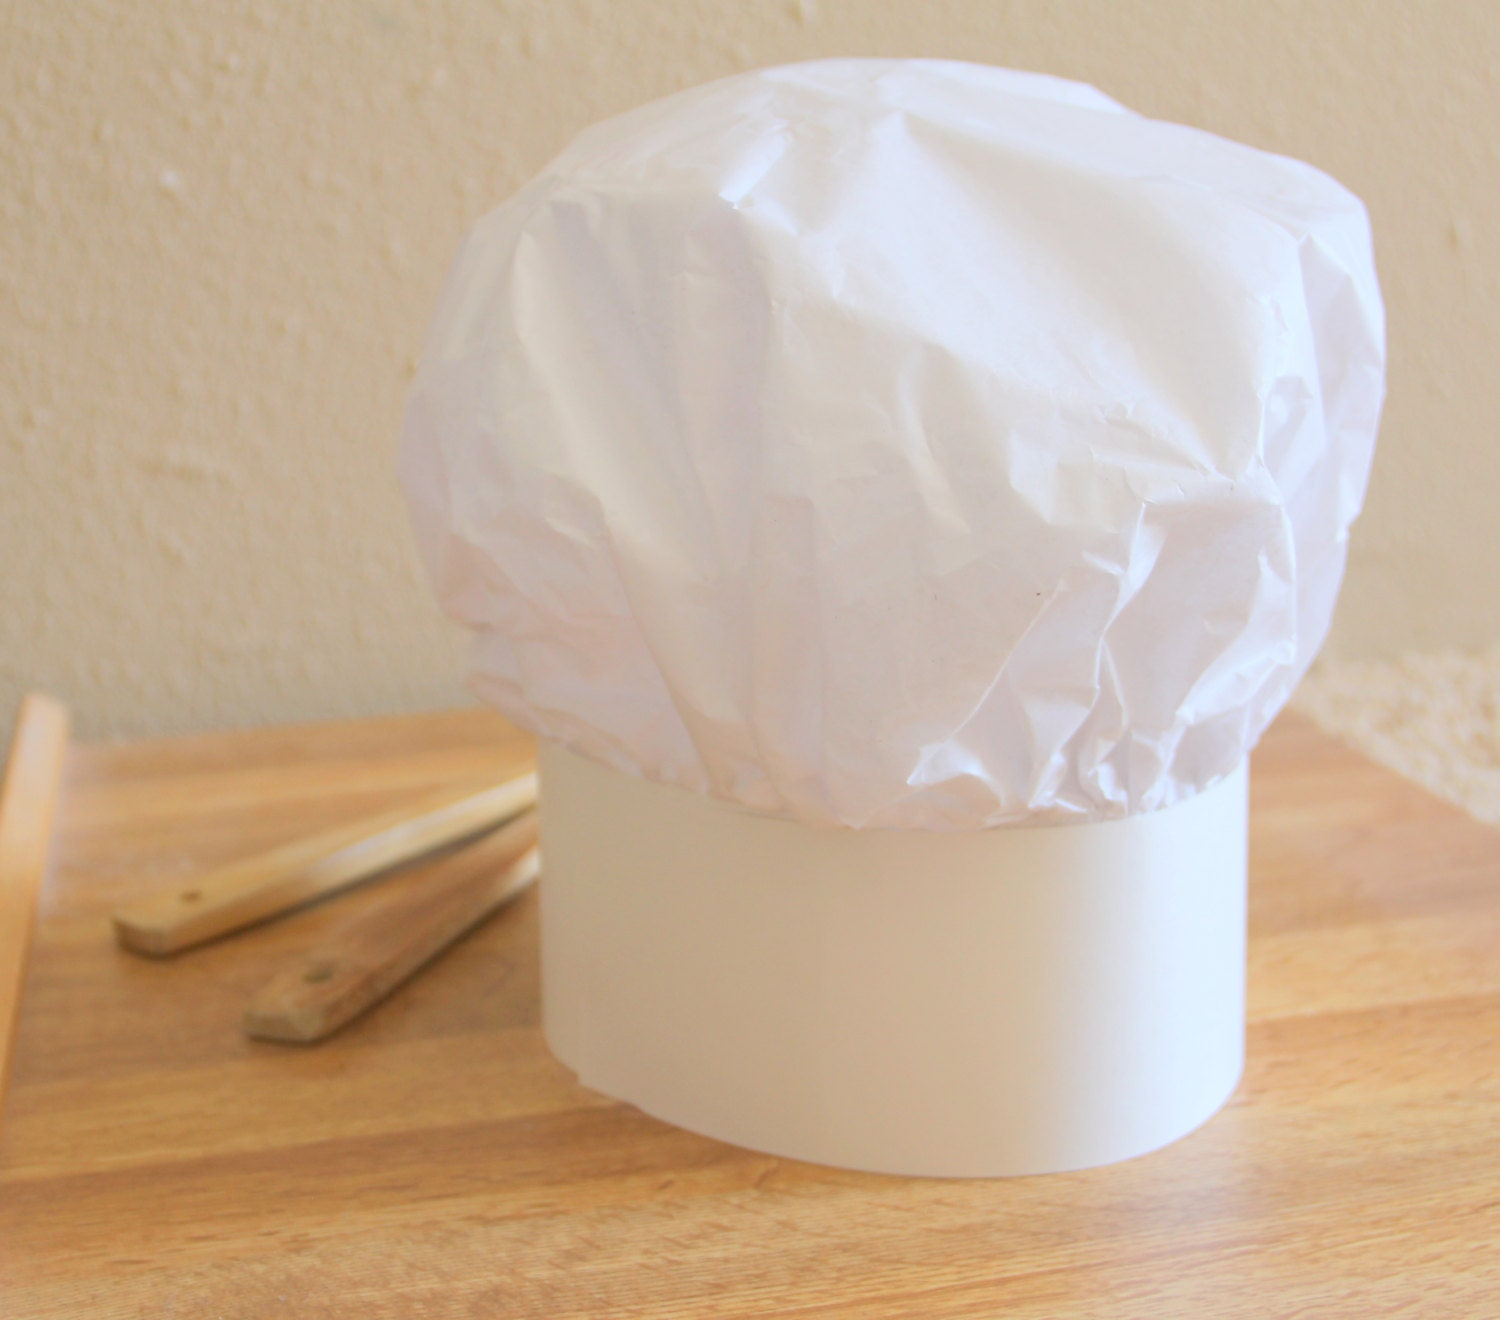 where to buy paper chef hats Find chef hats, traditional chef hats, toques, kitchen skull caps, head wraps, & neckerchiefs made to keep you cool in the kitchen at very low prices.